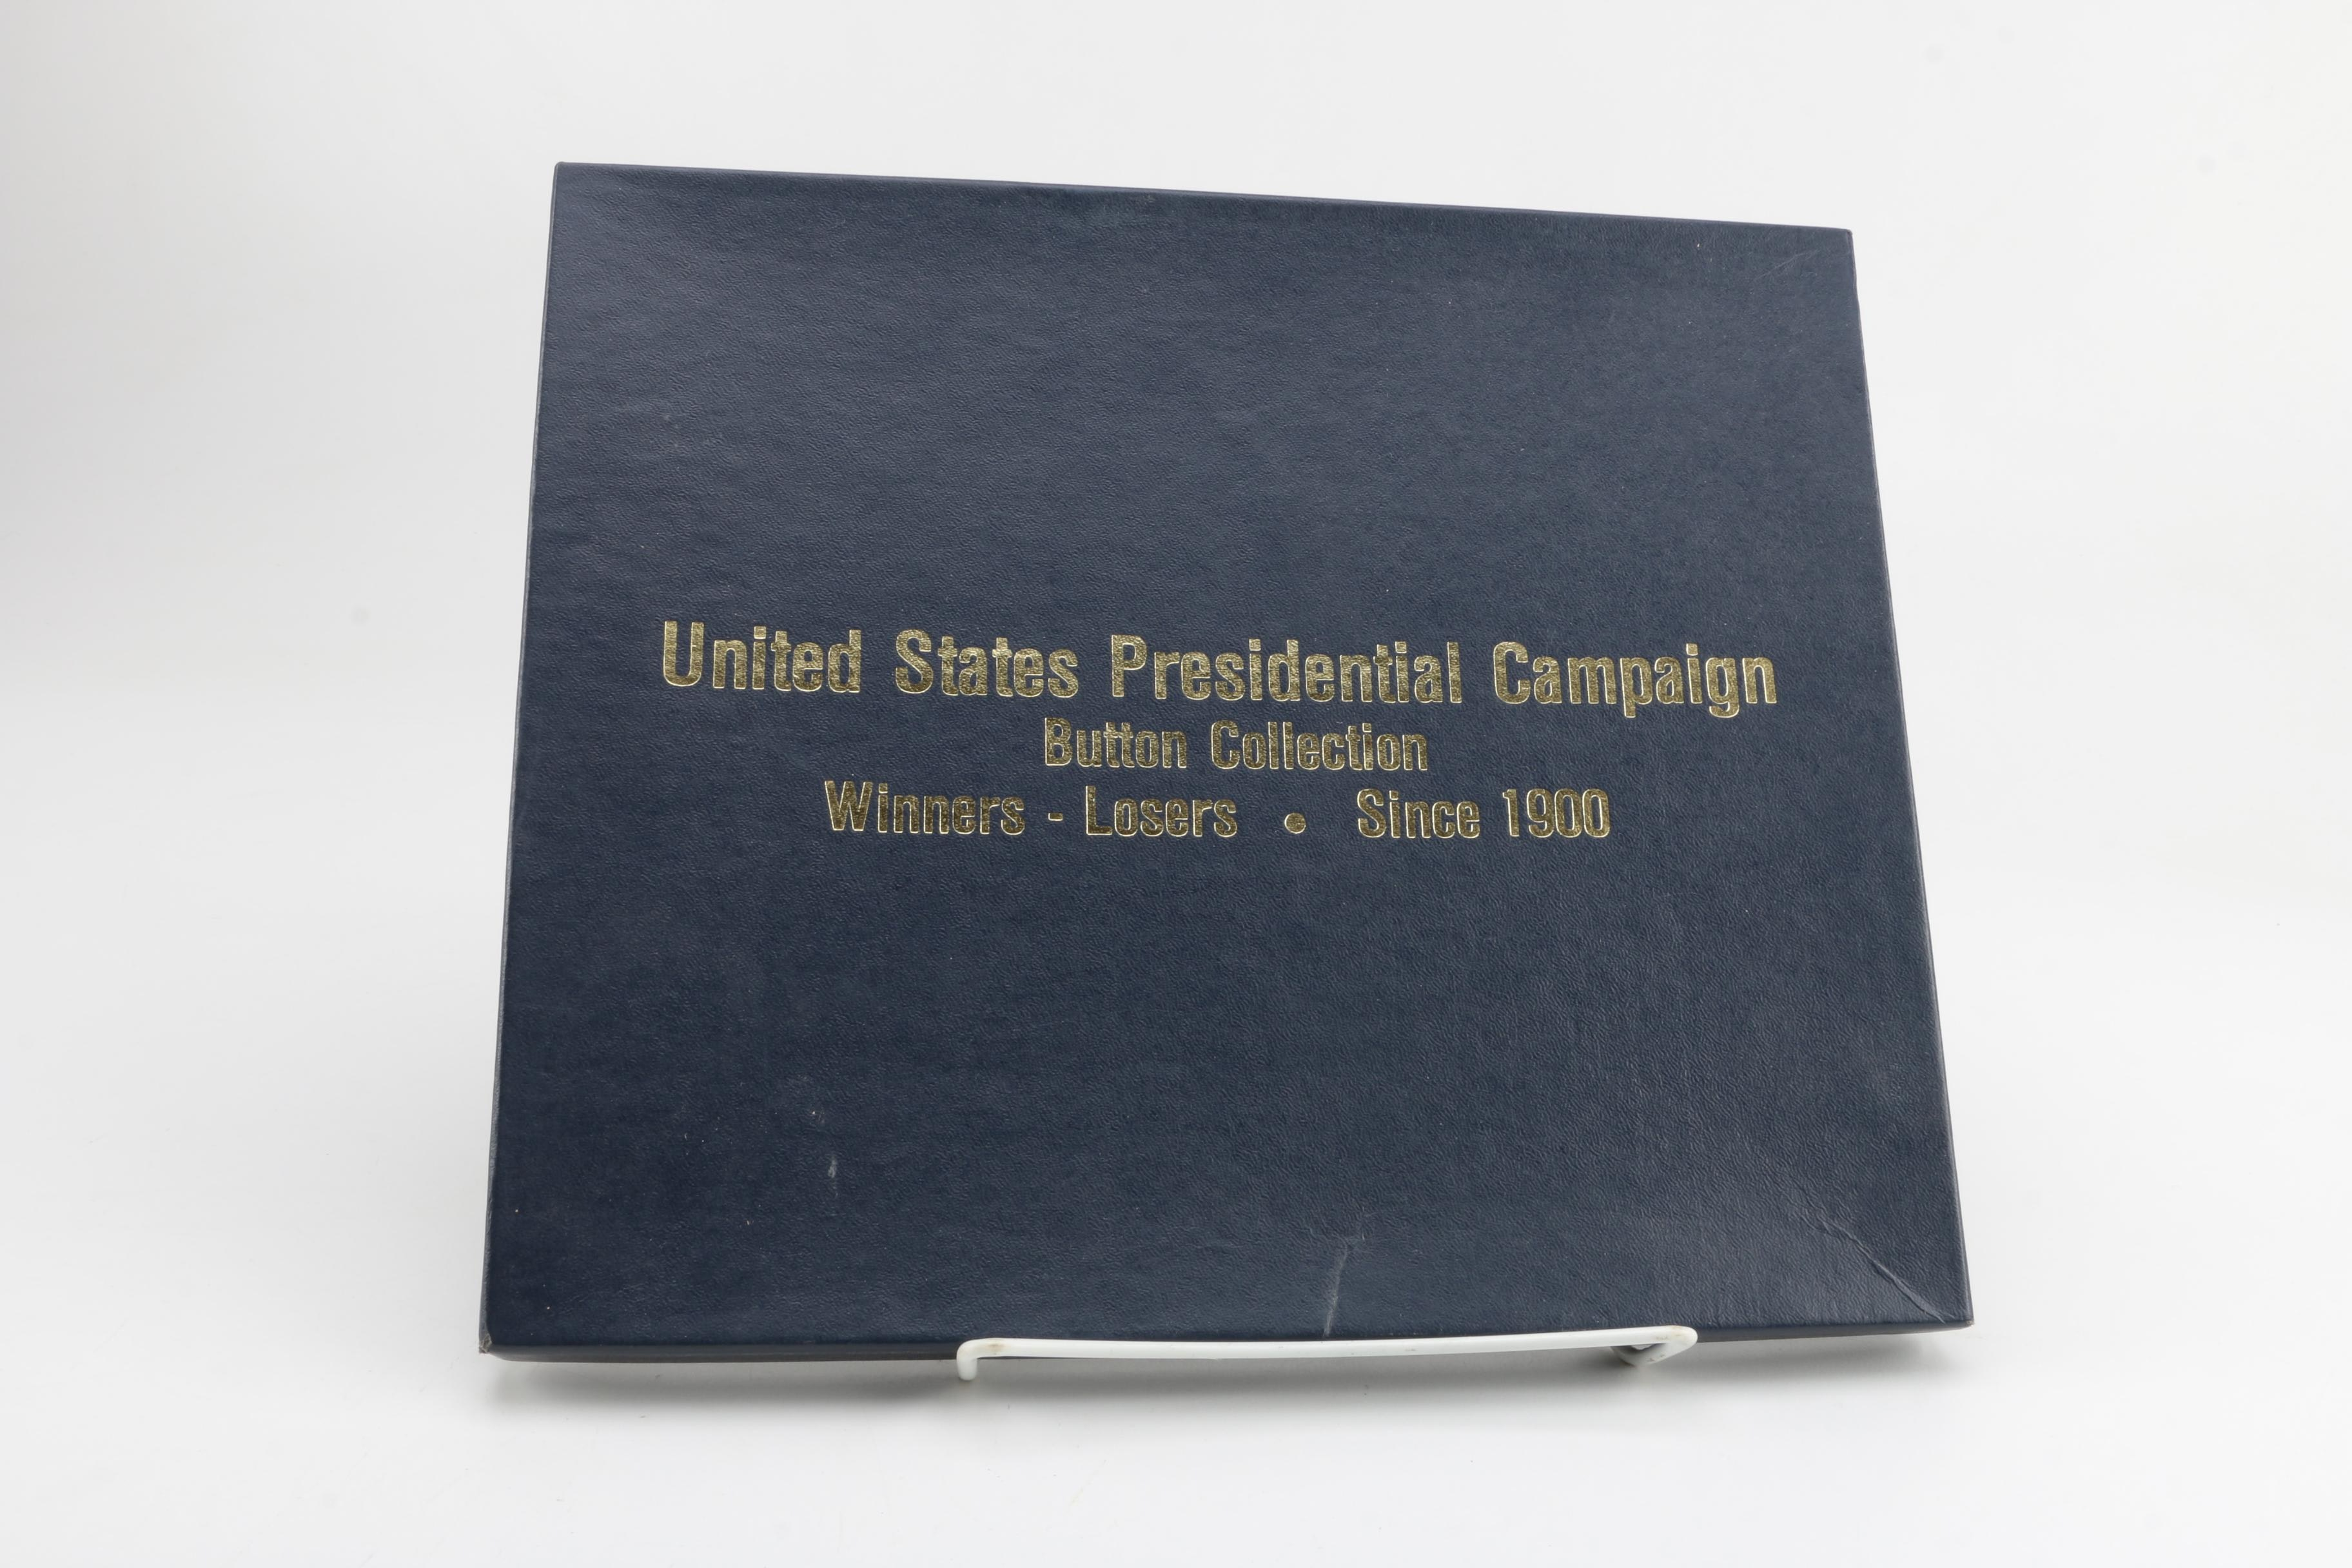 United States Presidential Campaign Button Collection with Booklet